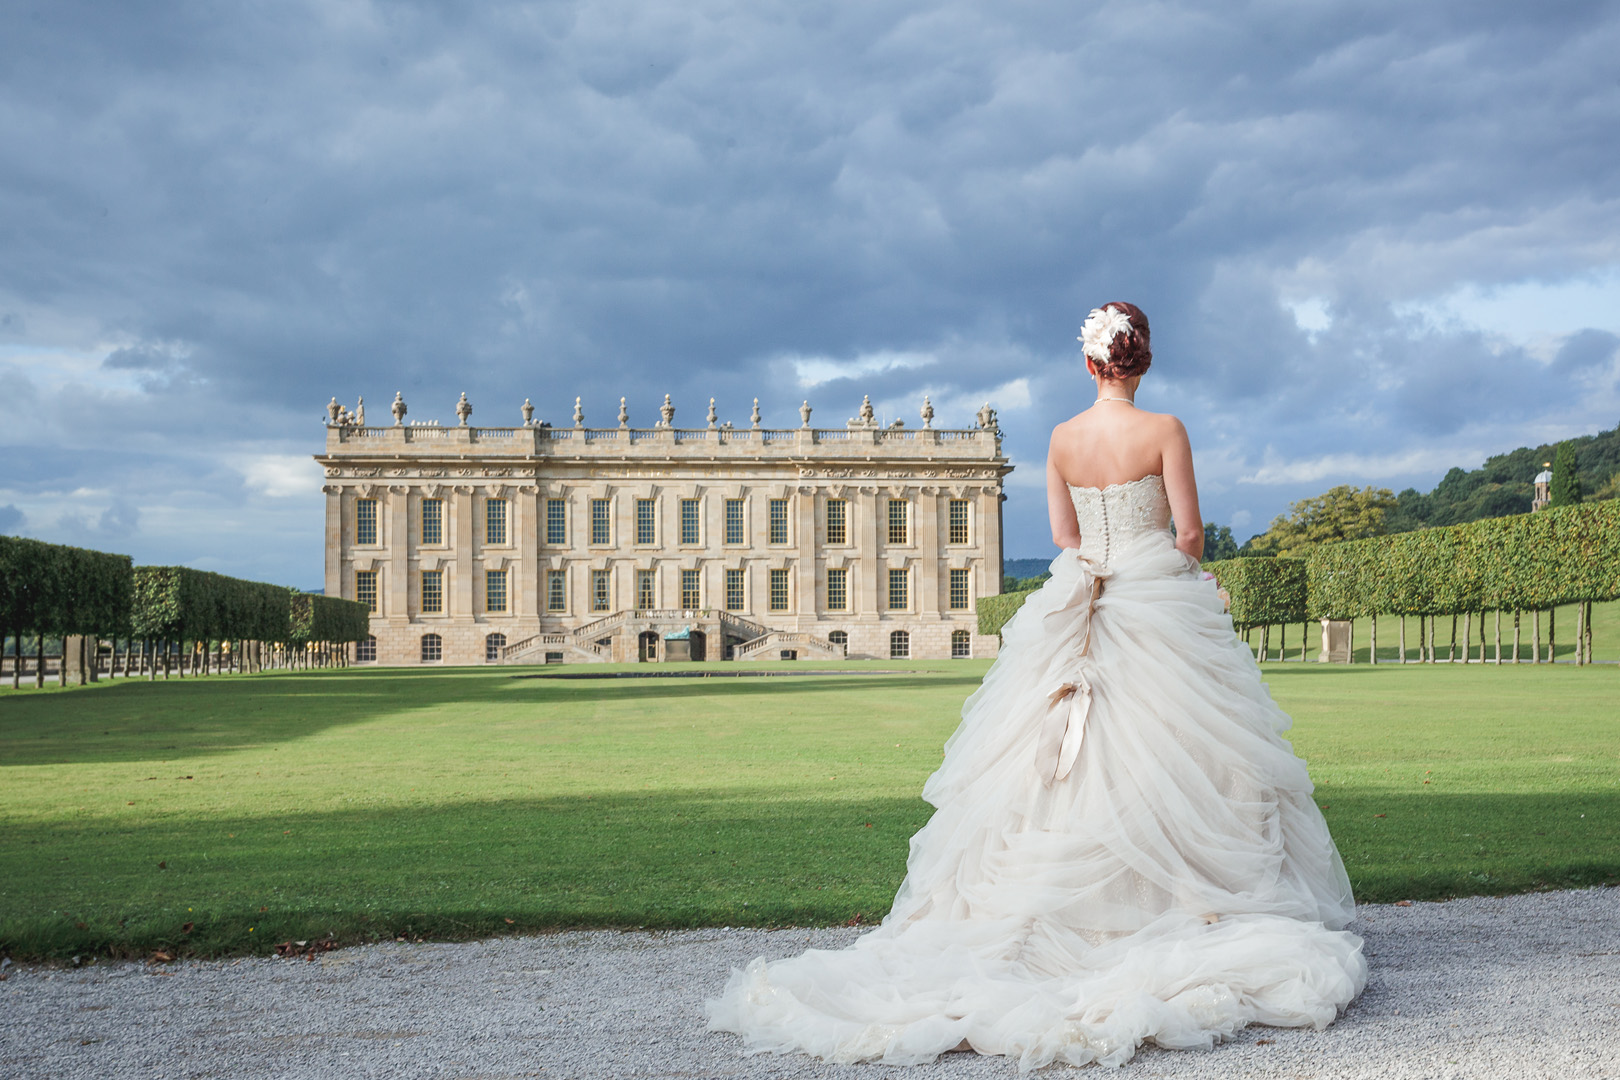 The Dress – Chatsworth House